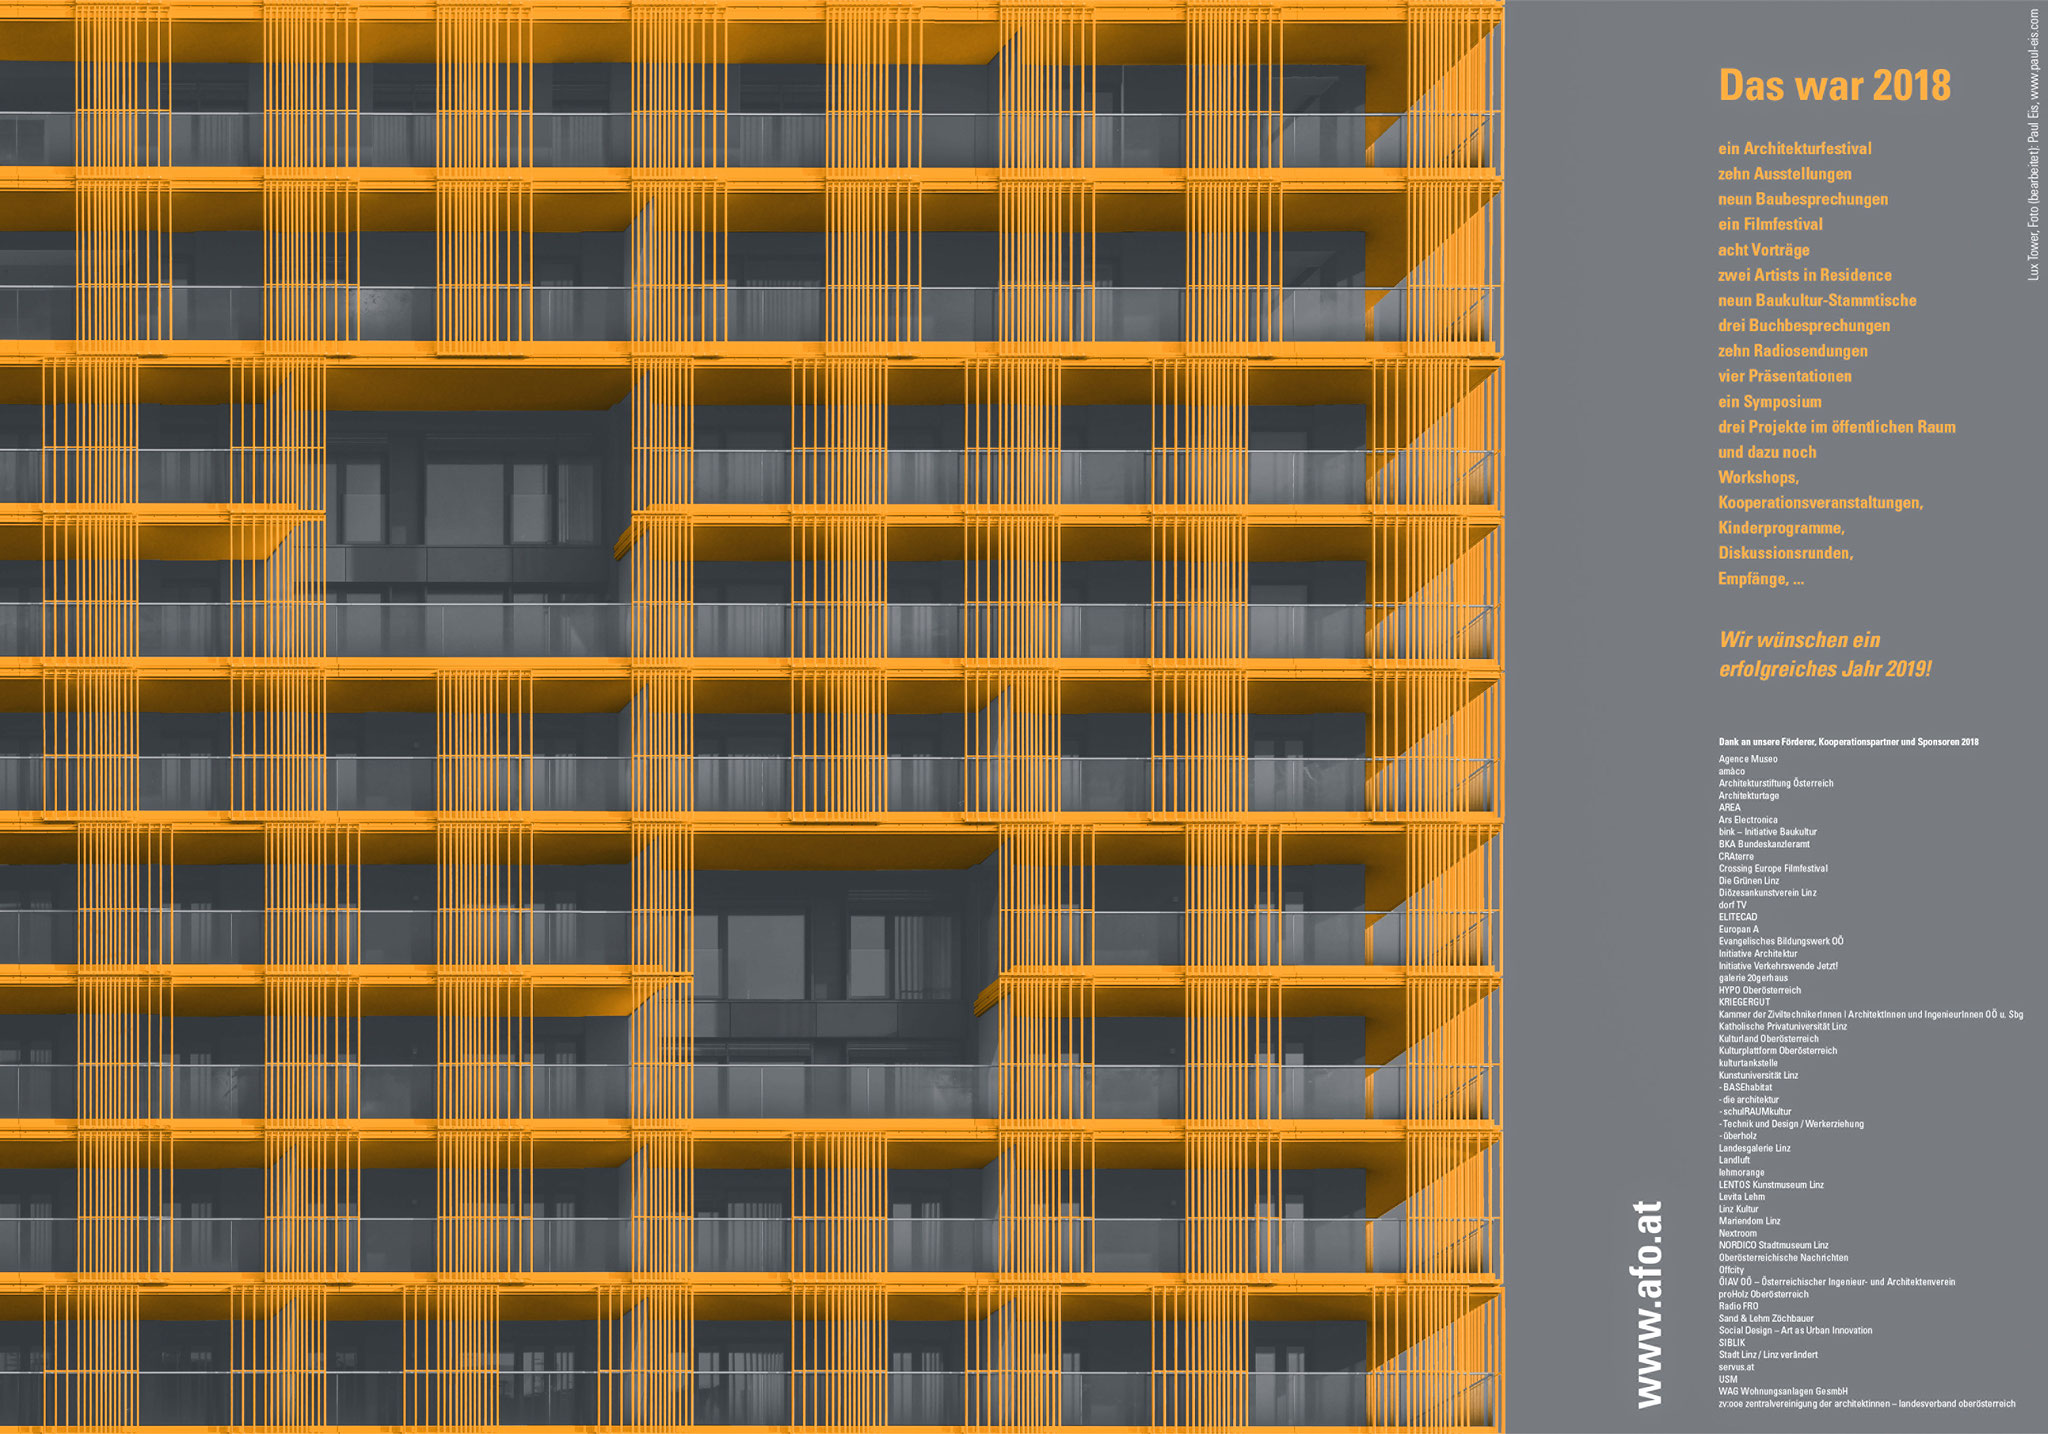 Poster design commissioned by the AFO (Architekturforum Oberösterreich). Architecture photography of the Lux Tower, Linz by Riepl Riepl Architekten.